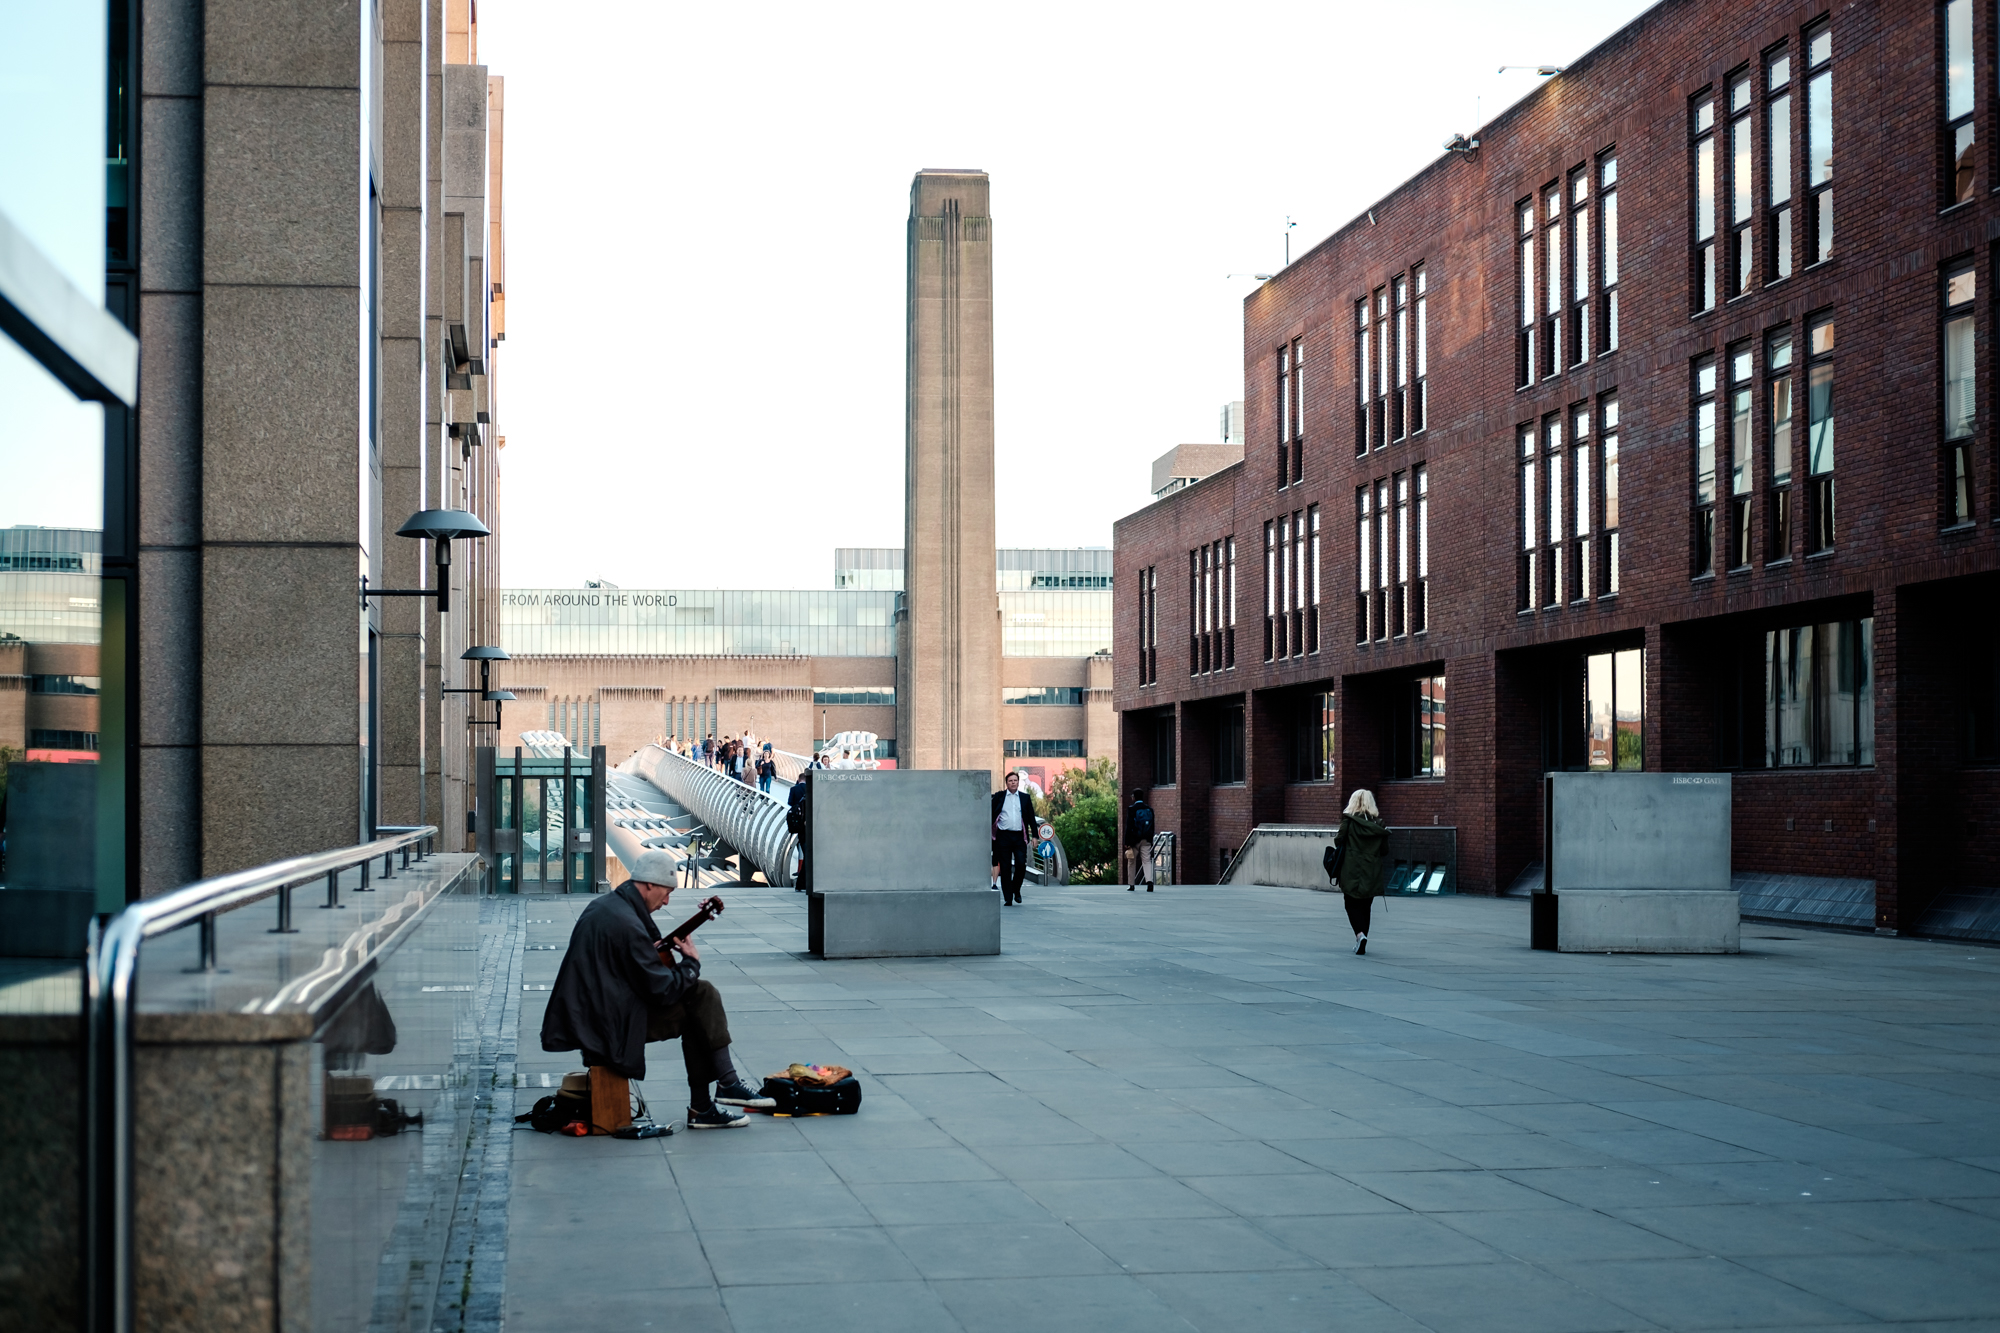 A photo of a busker and Tate Modern in London Chrome by Trevor Sherwin